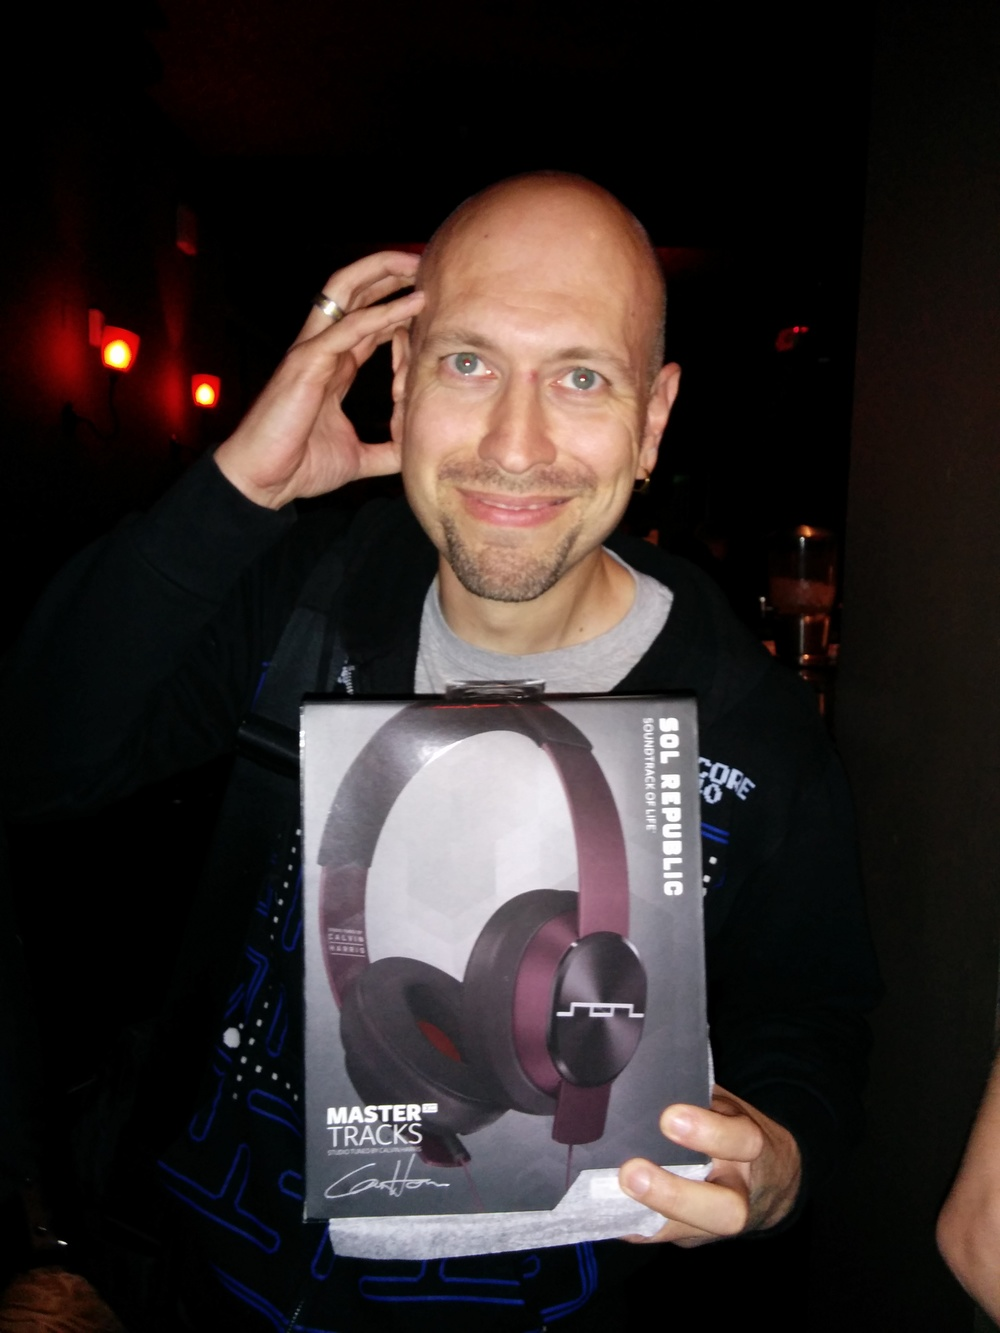 Chris, lucky winner of SOL REPUBLIC Master Tracks XC headphones